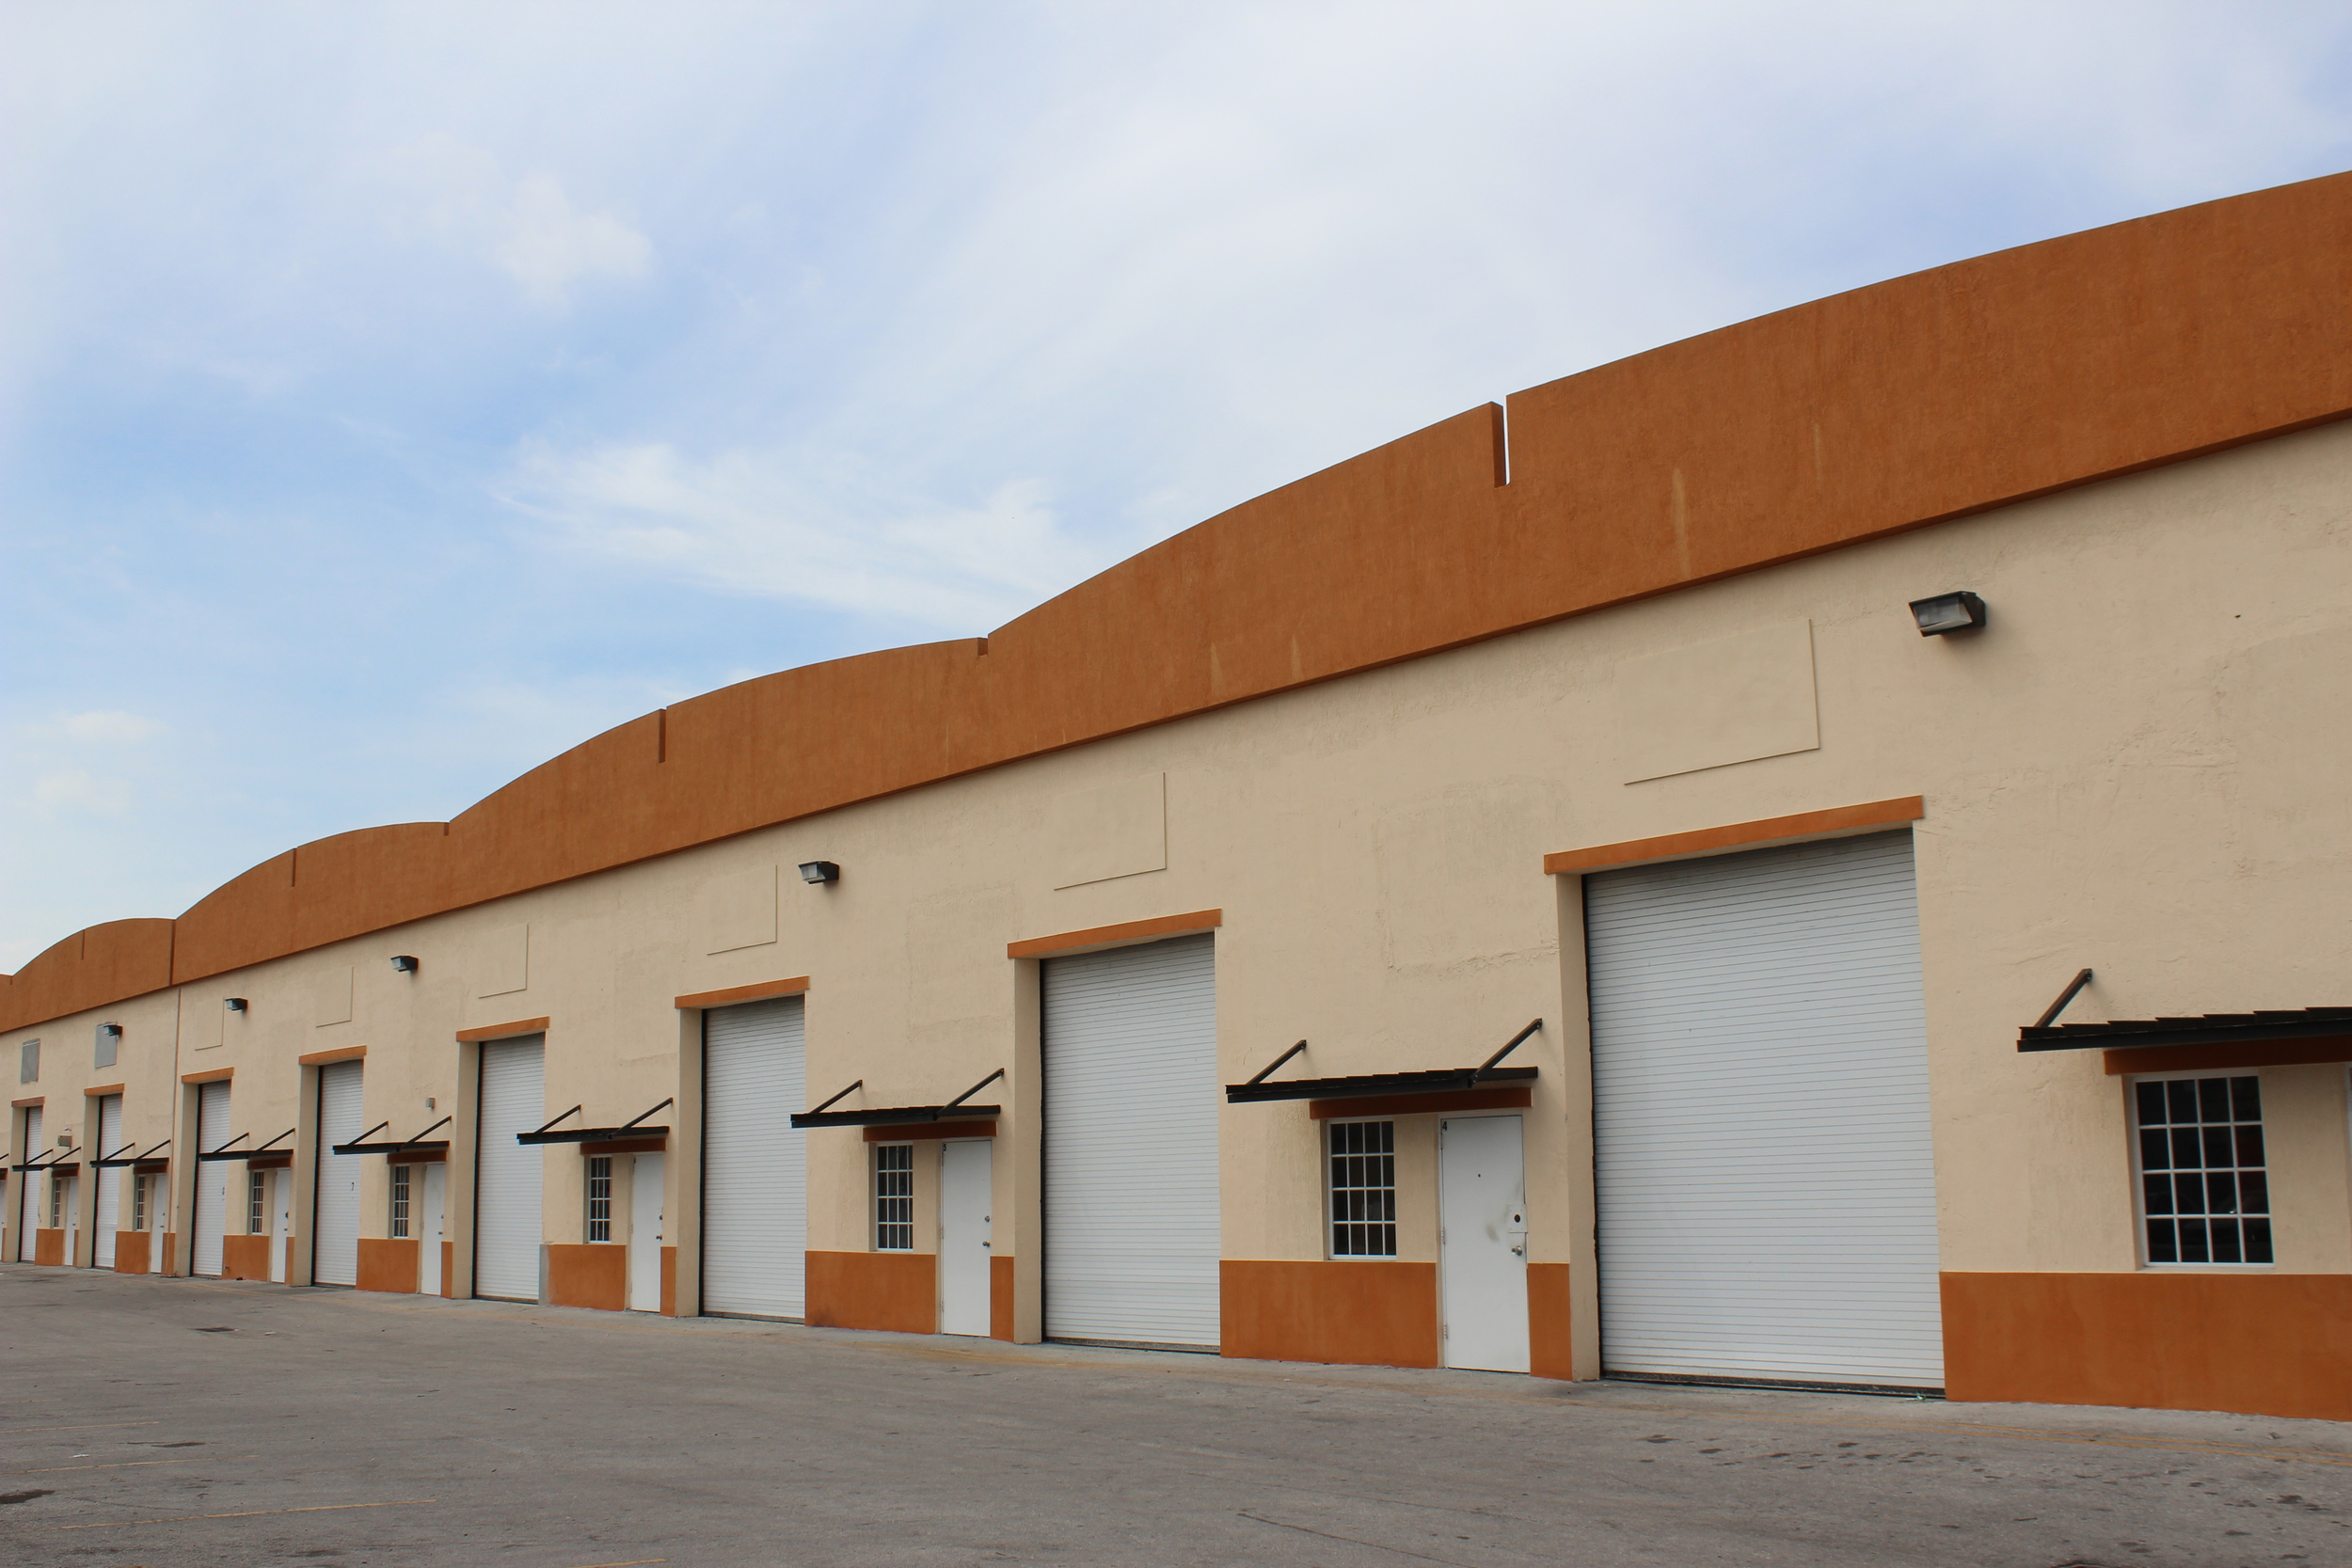 Street level warehouse